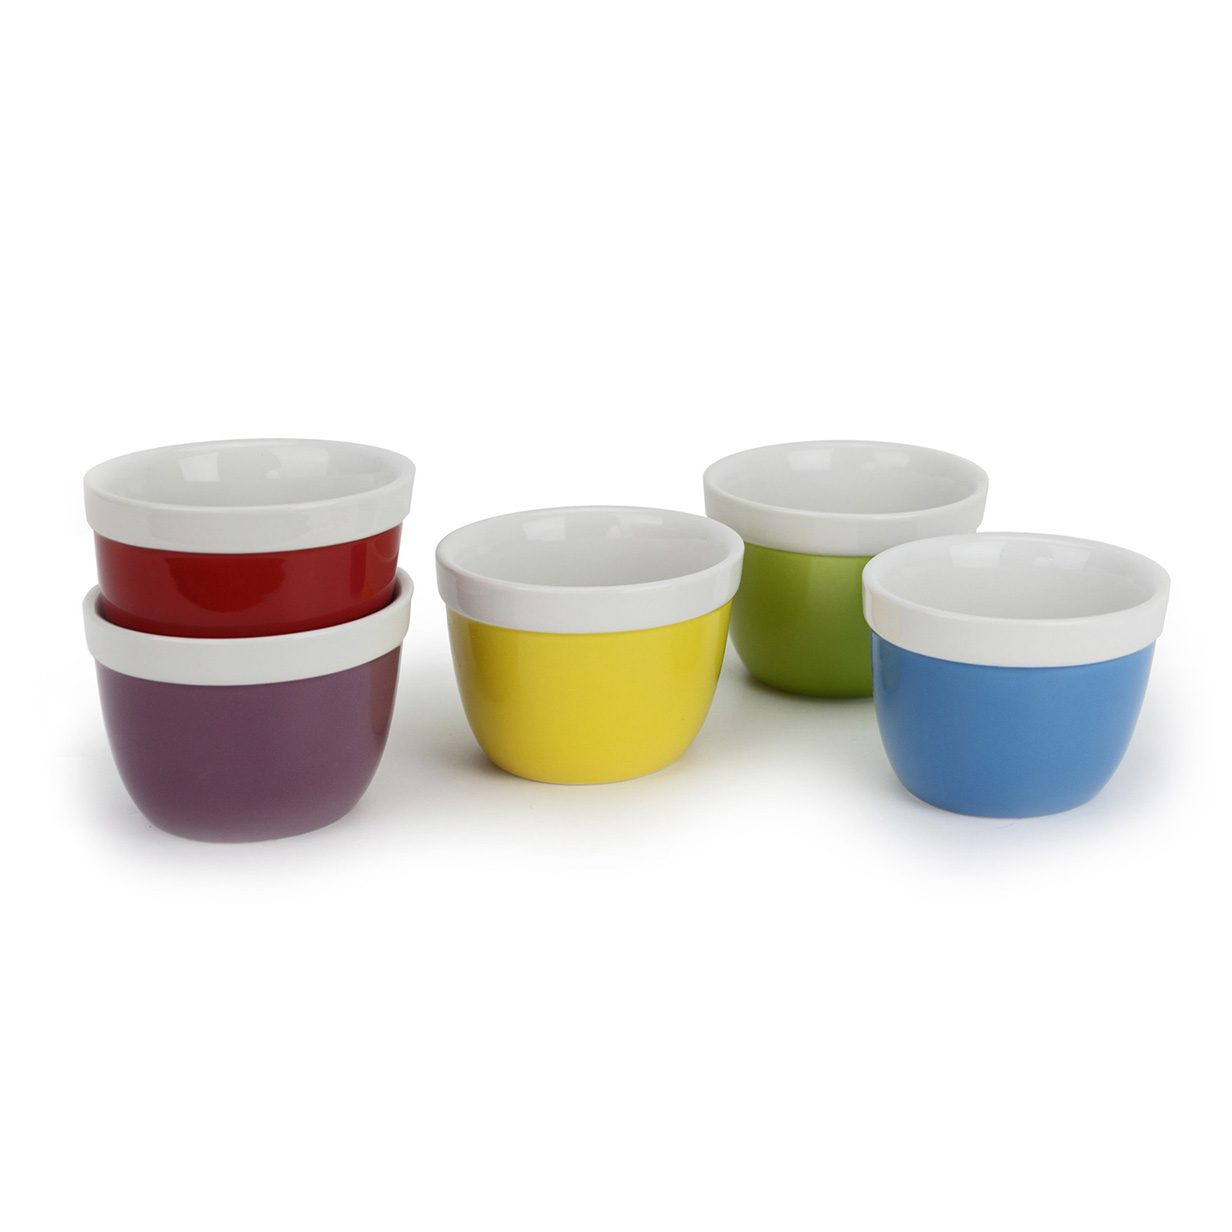 Coloured Bowls Product Photography Example